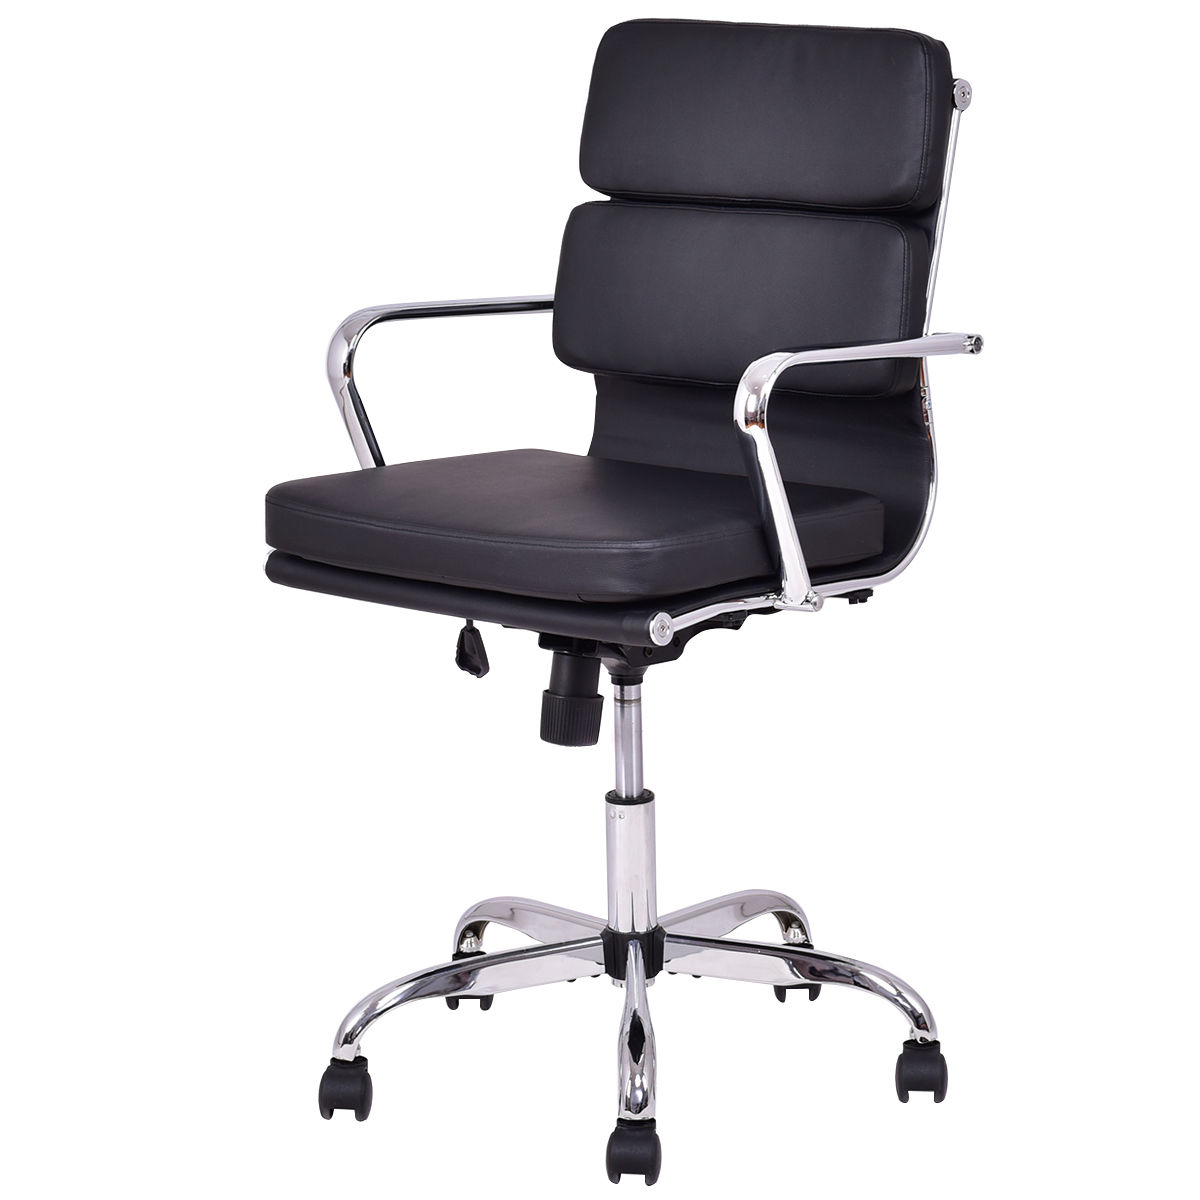 Giantex Low Back PU Leather Executive Office Chair Computer Desk Task Gaming Chair Swivel Modern Black Armchairs HW55516